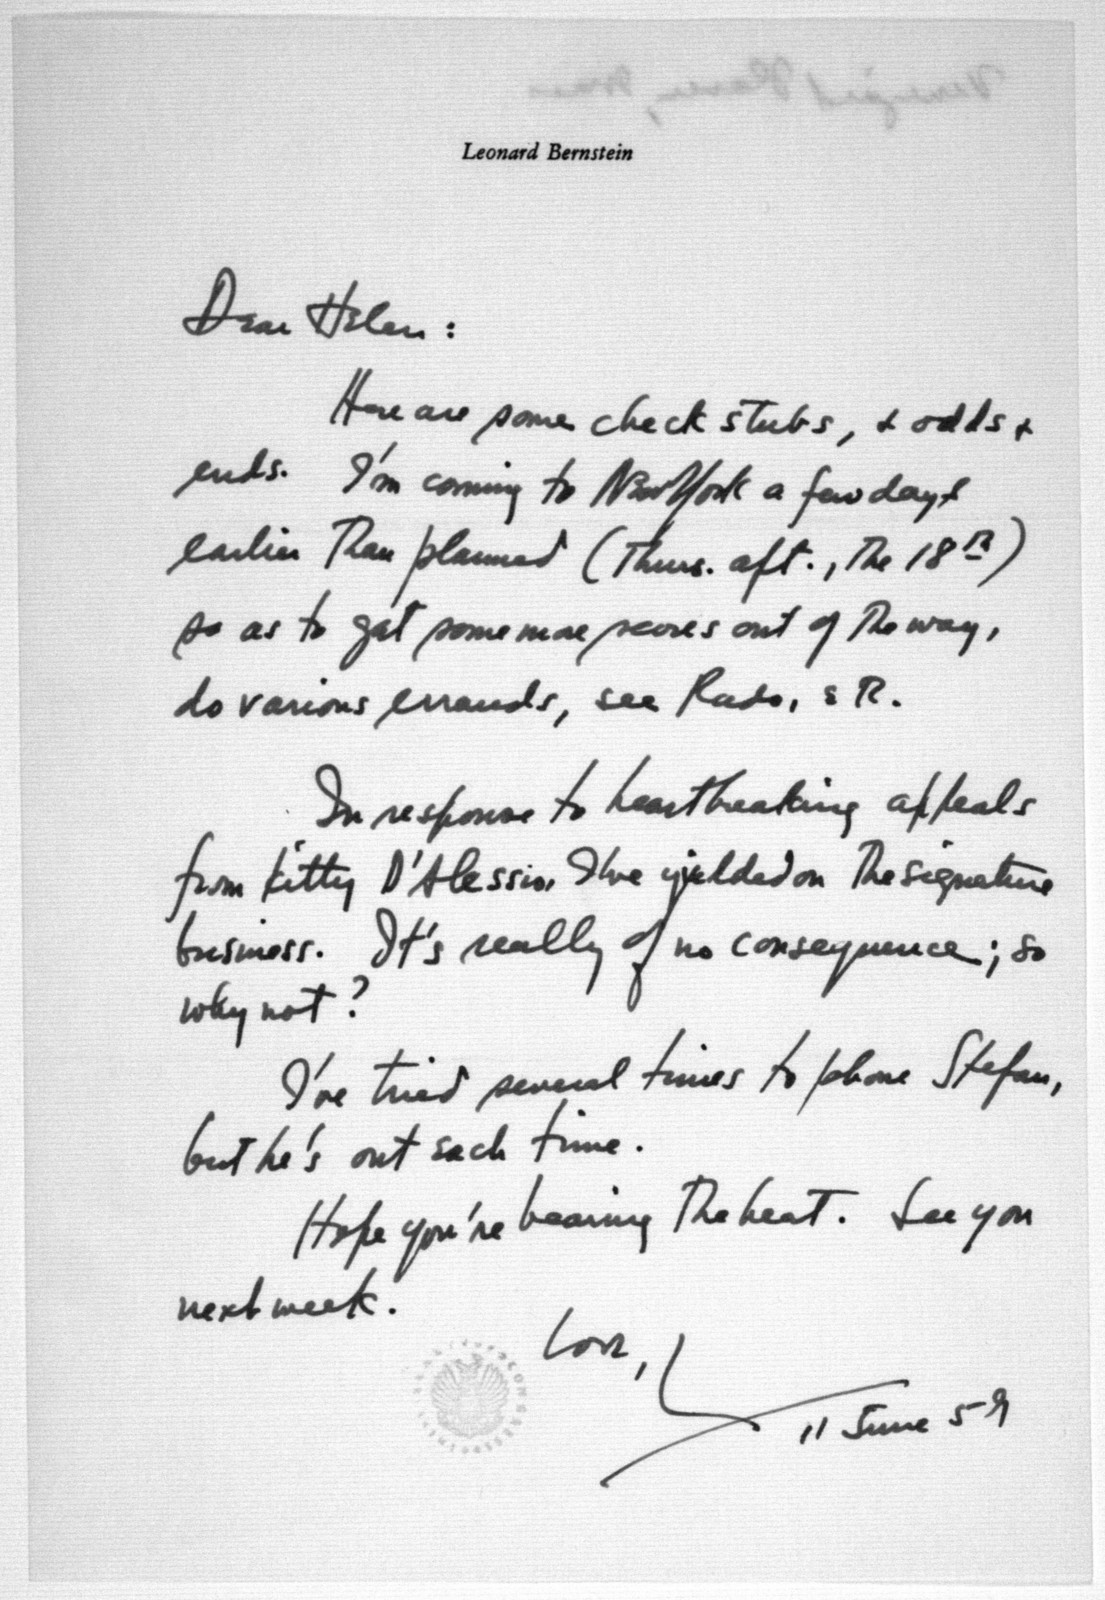 Letter from Leonard Bernstein to Helen Coates, June 11, 1959